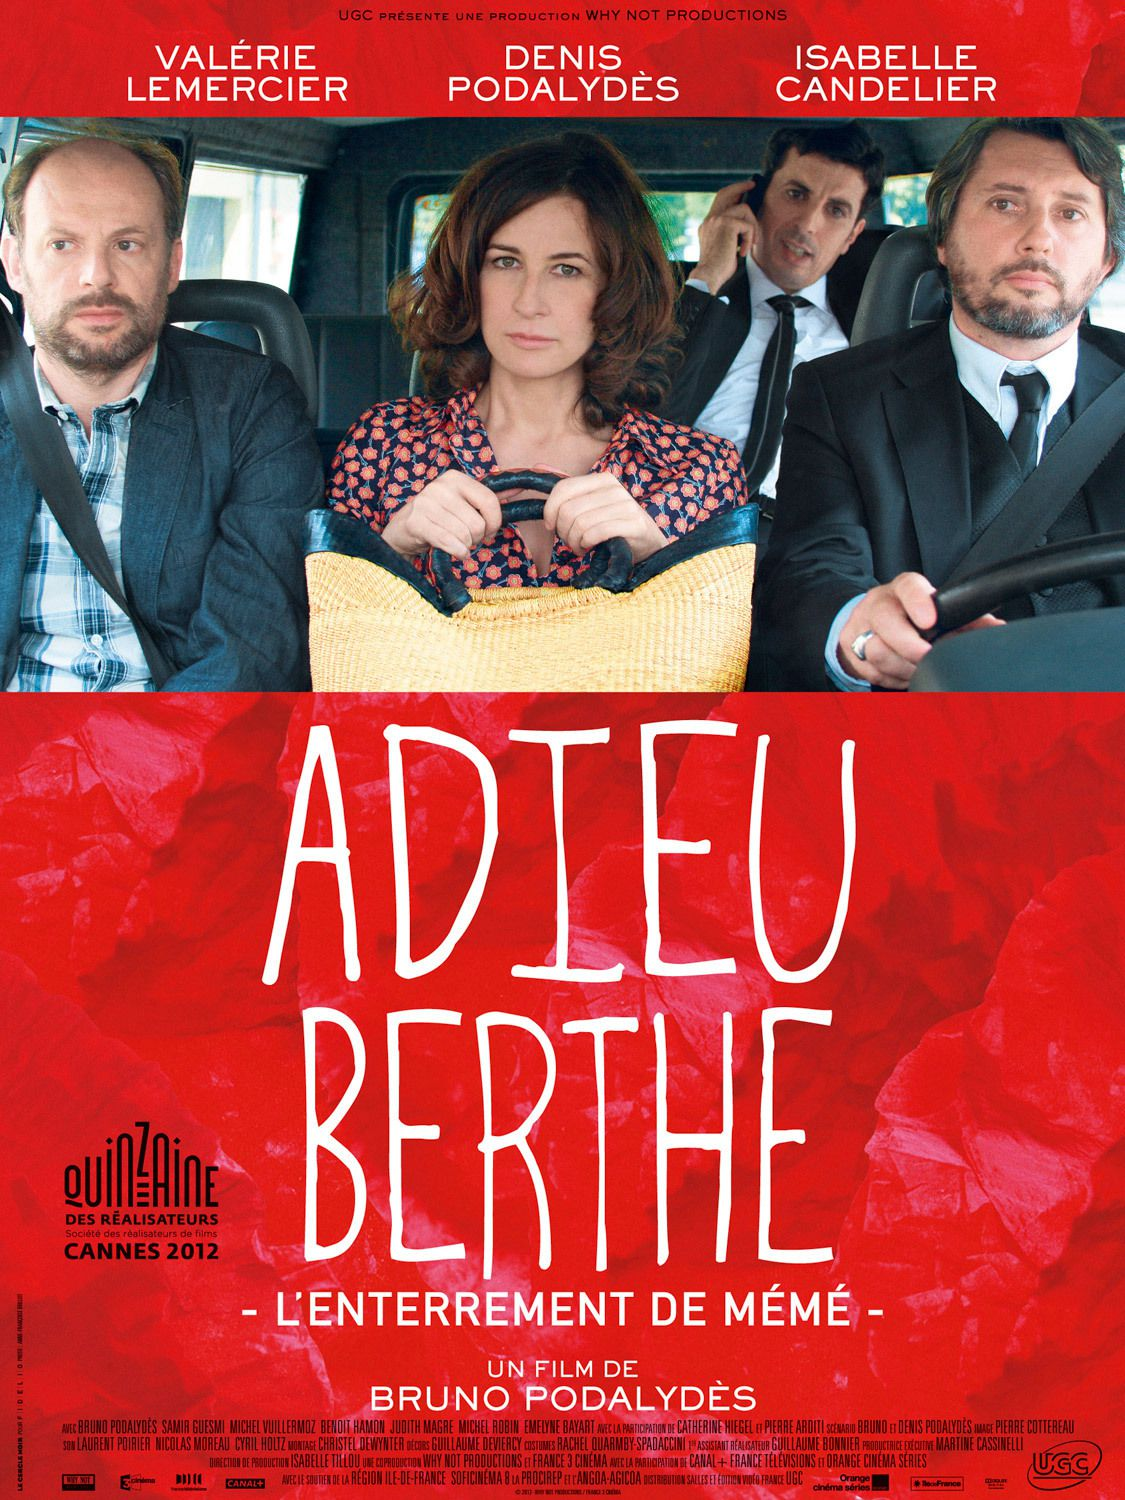 Adieu Berthe, l'enterrement de mémé - Film (2012) streaming VF gratuit complet